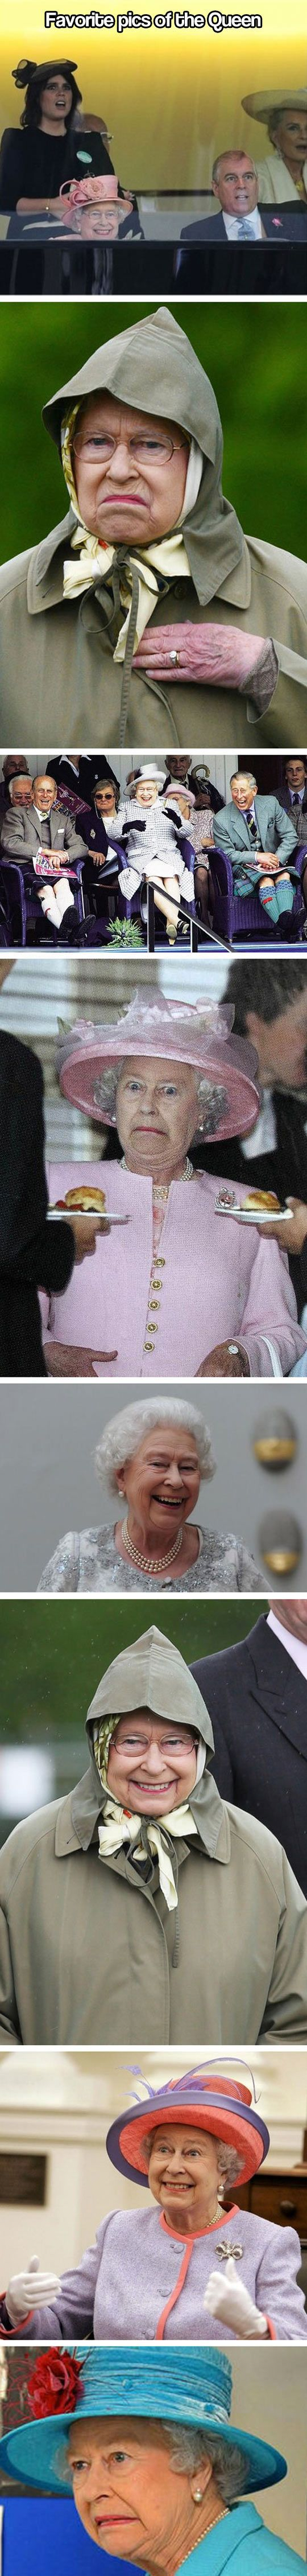 The best pictures of the Queen. She's fabulous